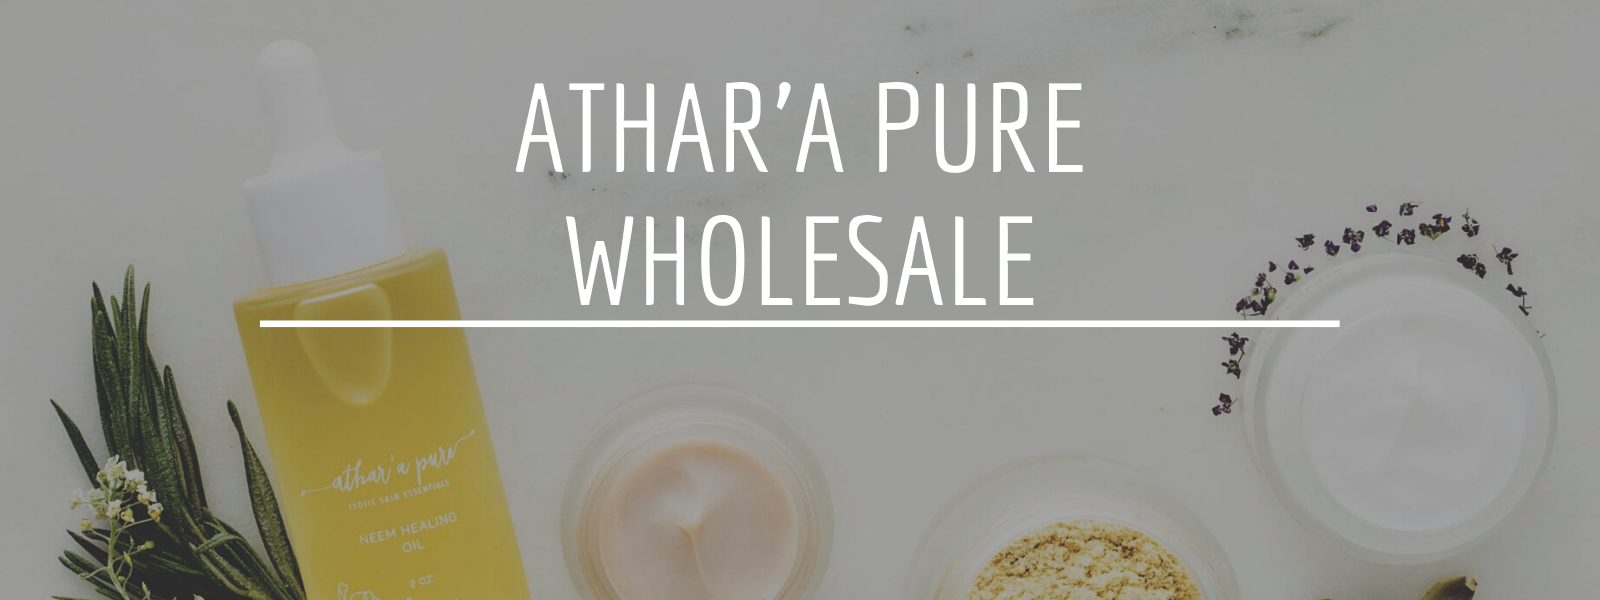 Athar'a Pure Wholesale Information